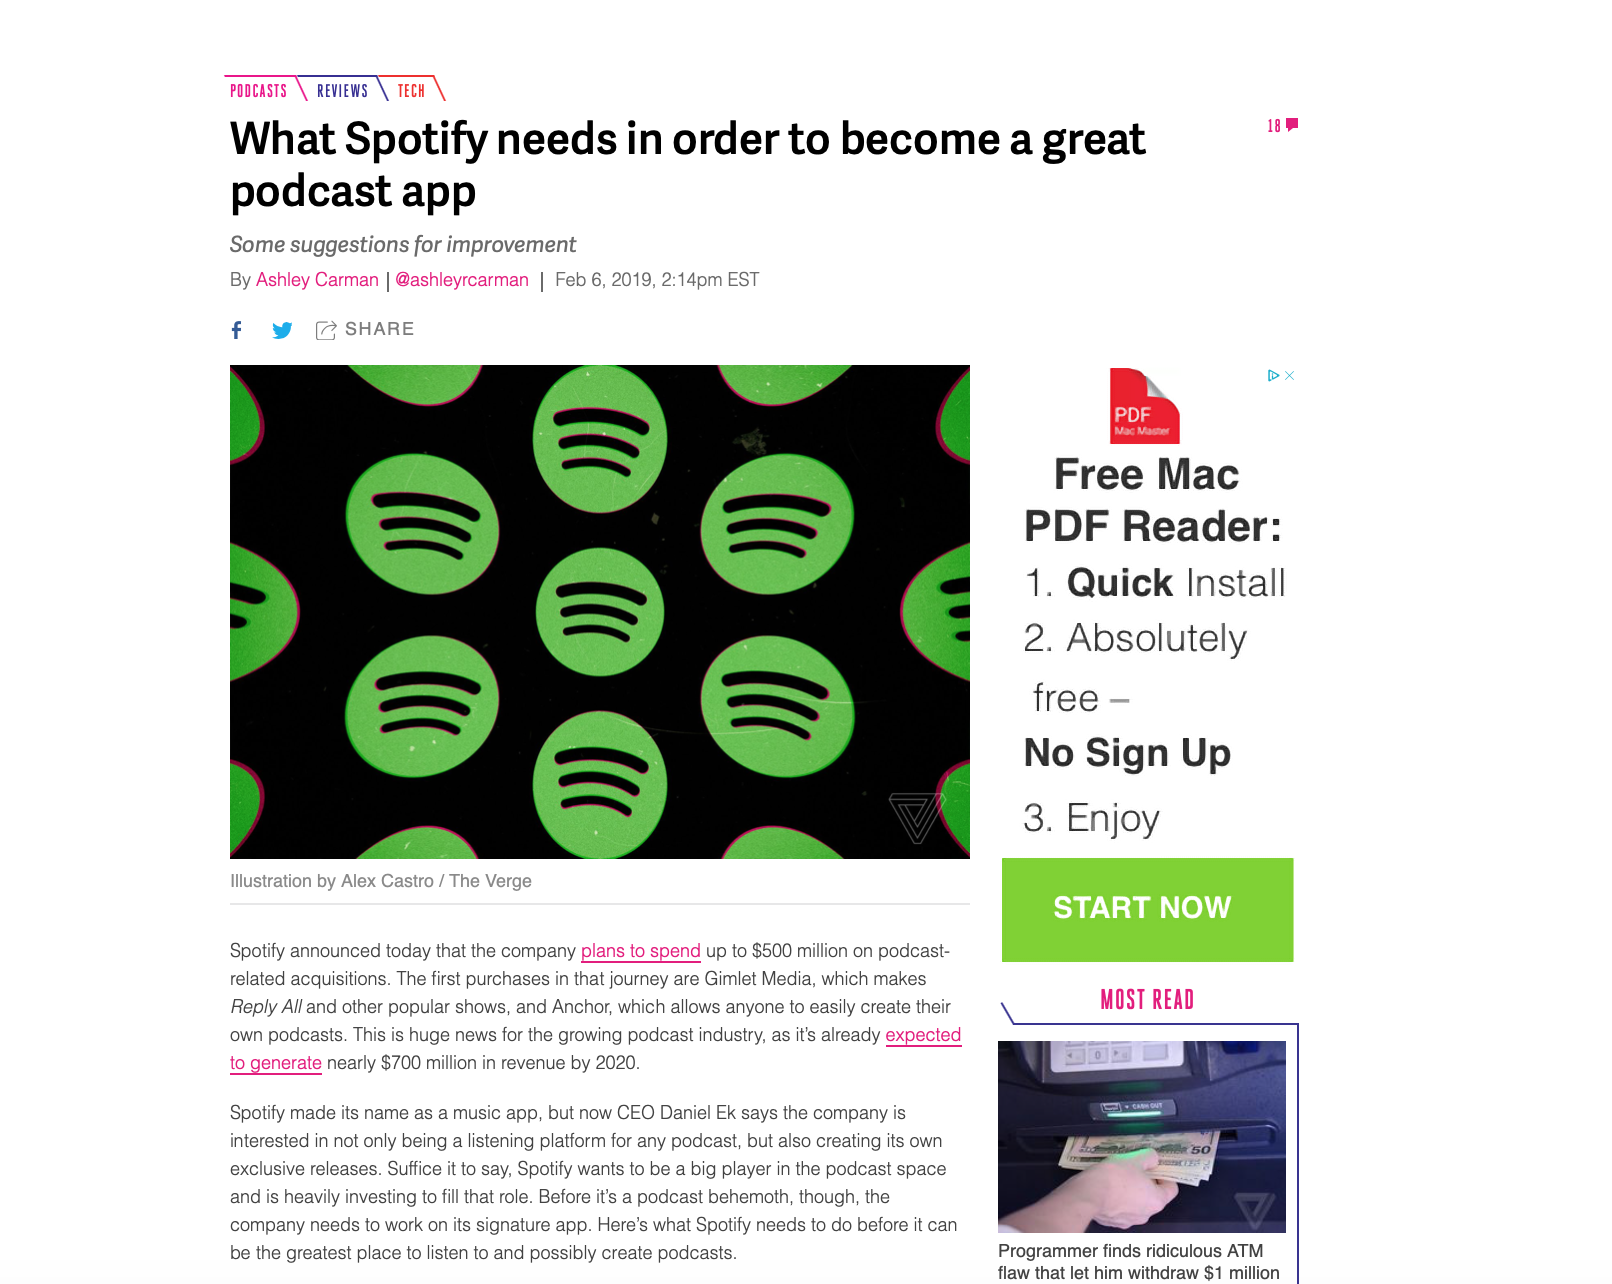 Jax Daily: Anchor is joining Spotify Making it the